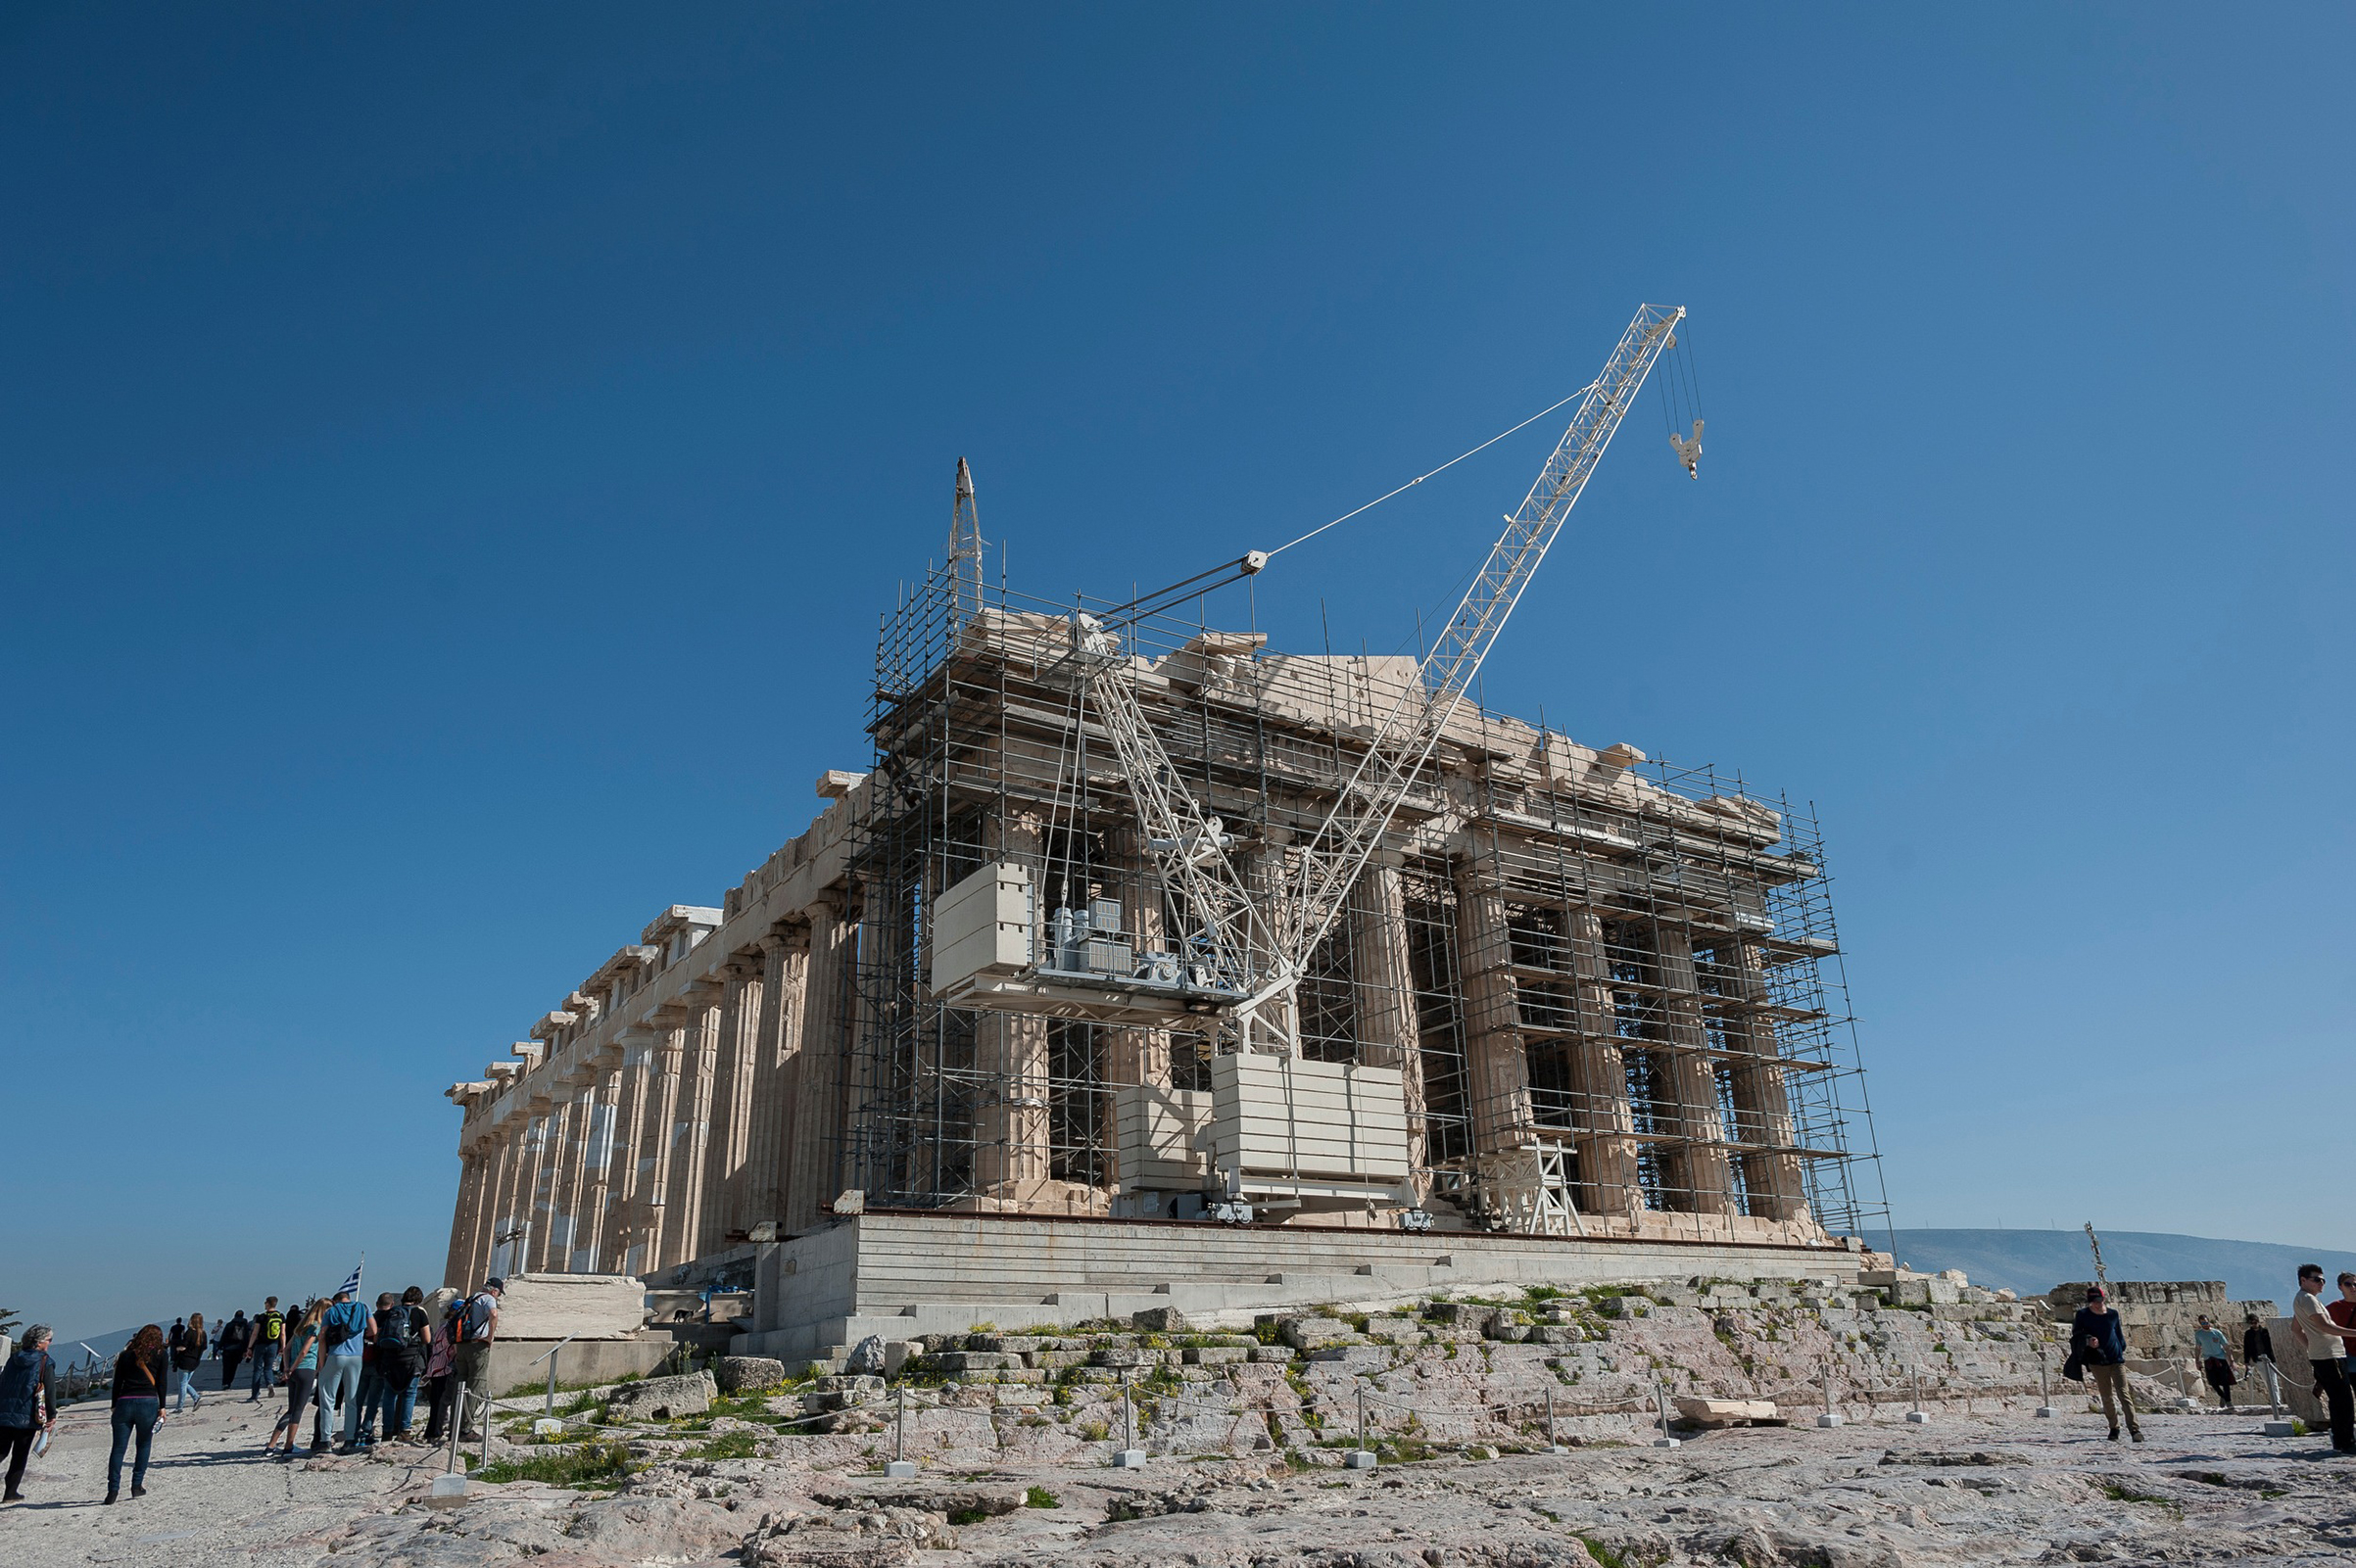 Work on the Acropolis is expected to continue through 2020